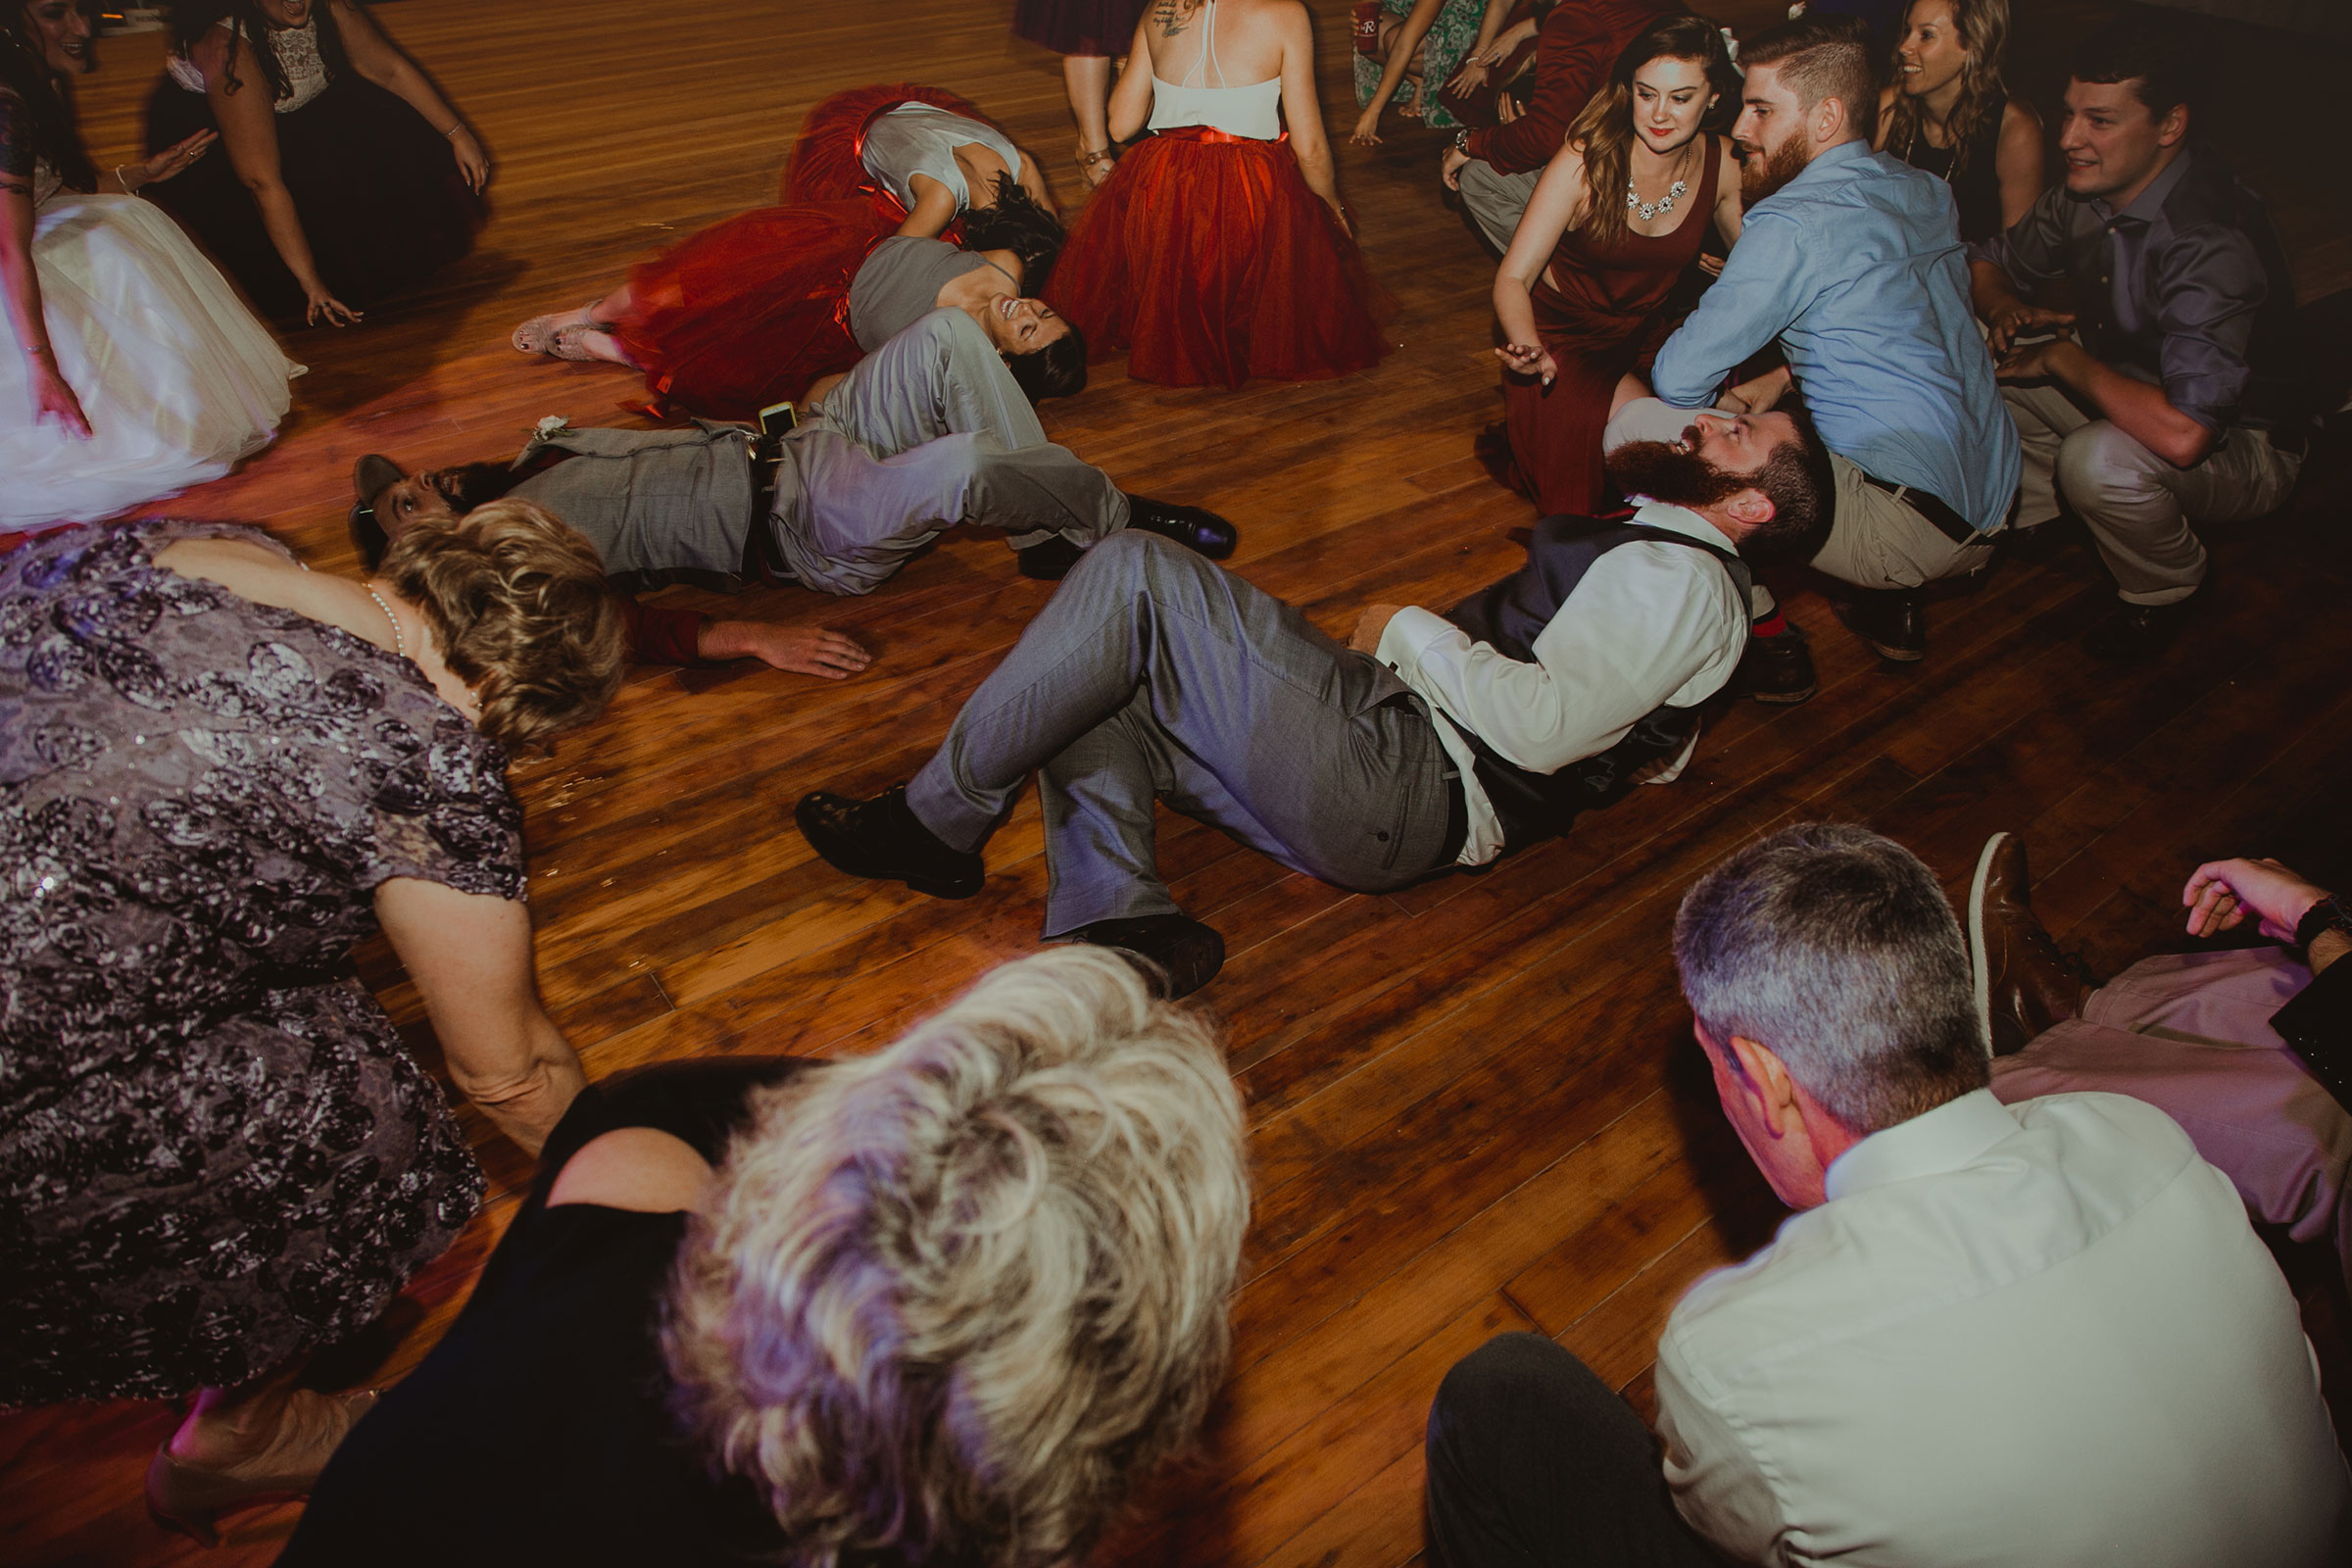 guest-and-wedding-party-dancing-at-reception-pella-plaza-desmoines-iowa-raelyn-ramey-photography.jpg